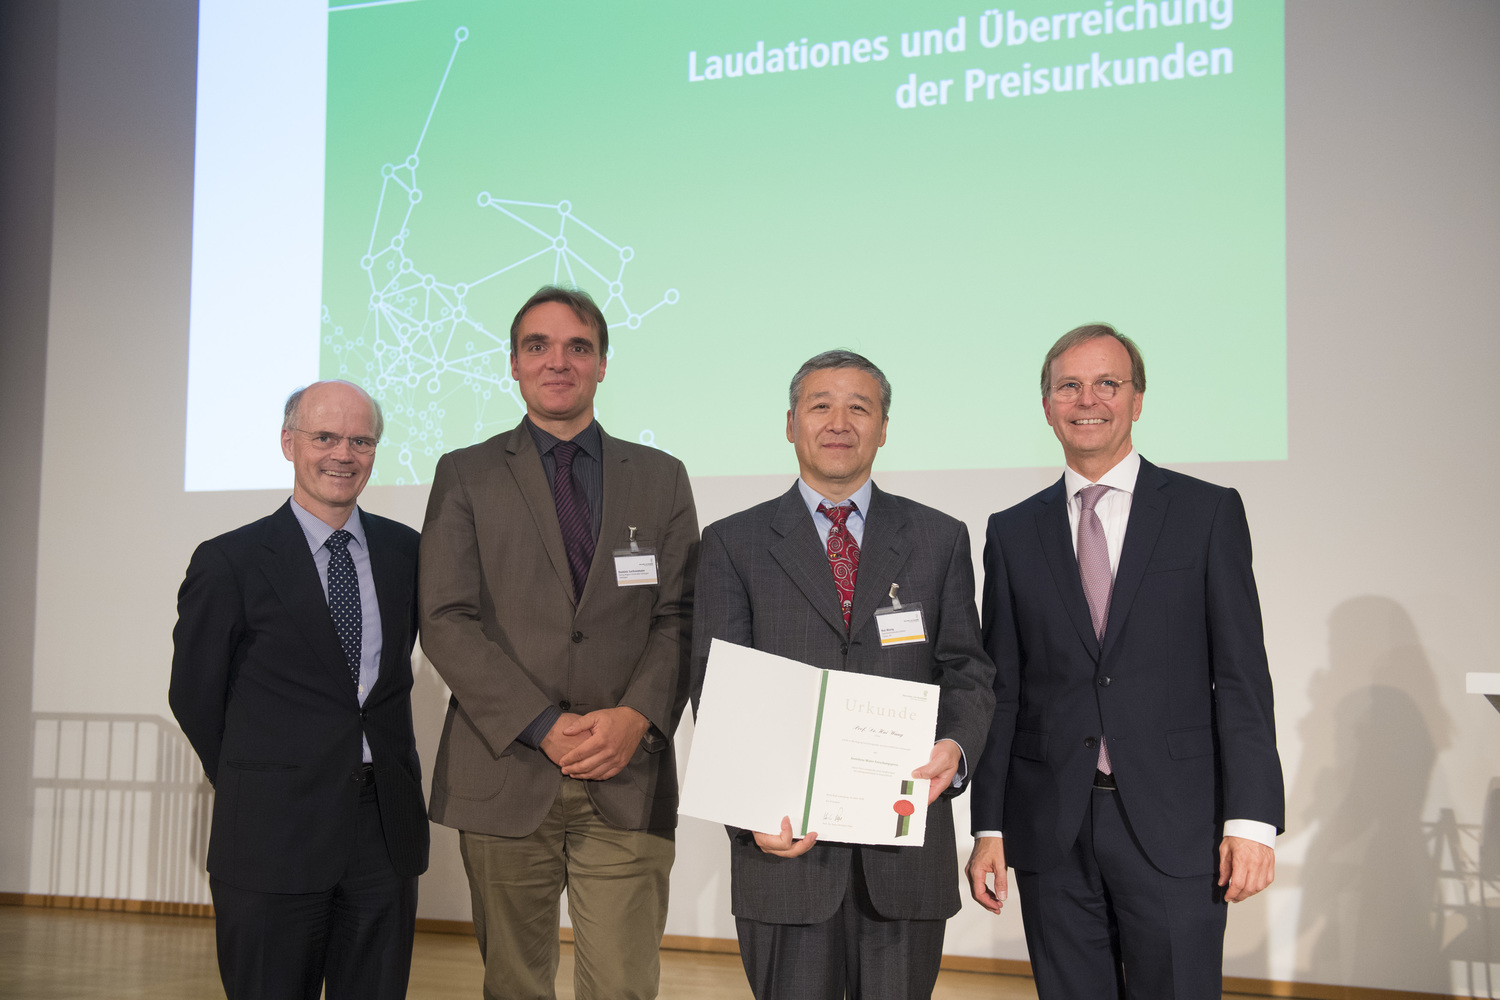 Award Winner Professor Wang Hui (second from right) with (from left) Dr. Enno Aufderheide (Humboldt Foundation), Professor Dominic Sachsenmaier (University of Göttingen) and Thomas Rachel (Federal Ministry of Education and Research).